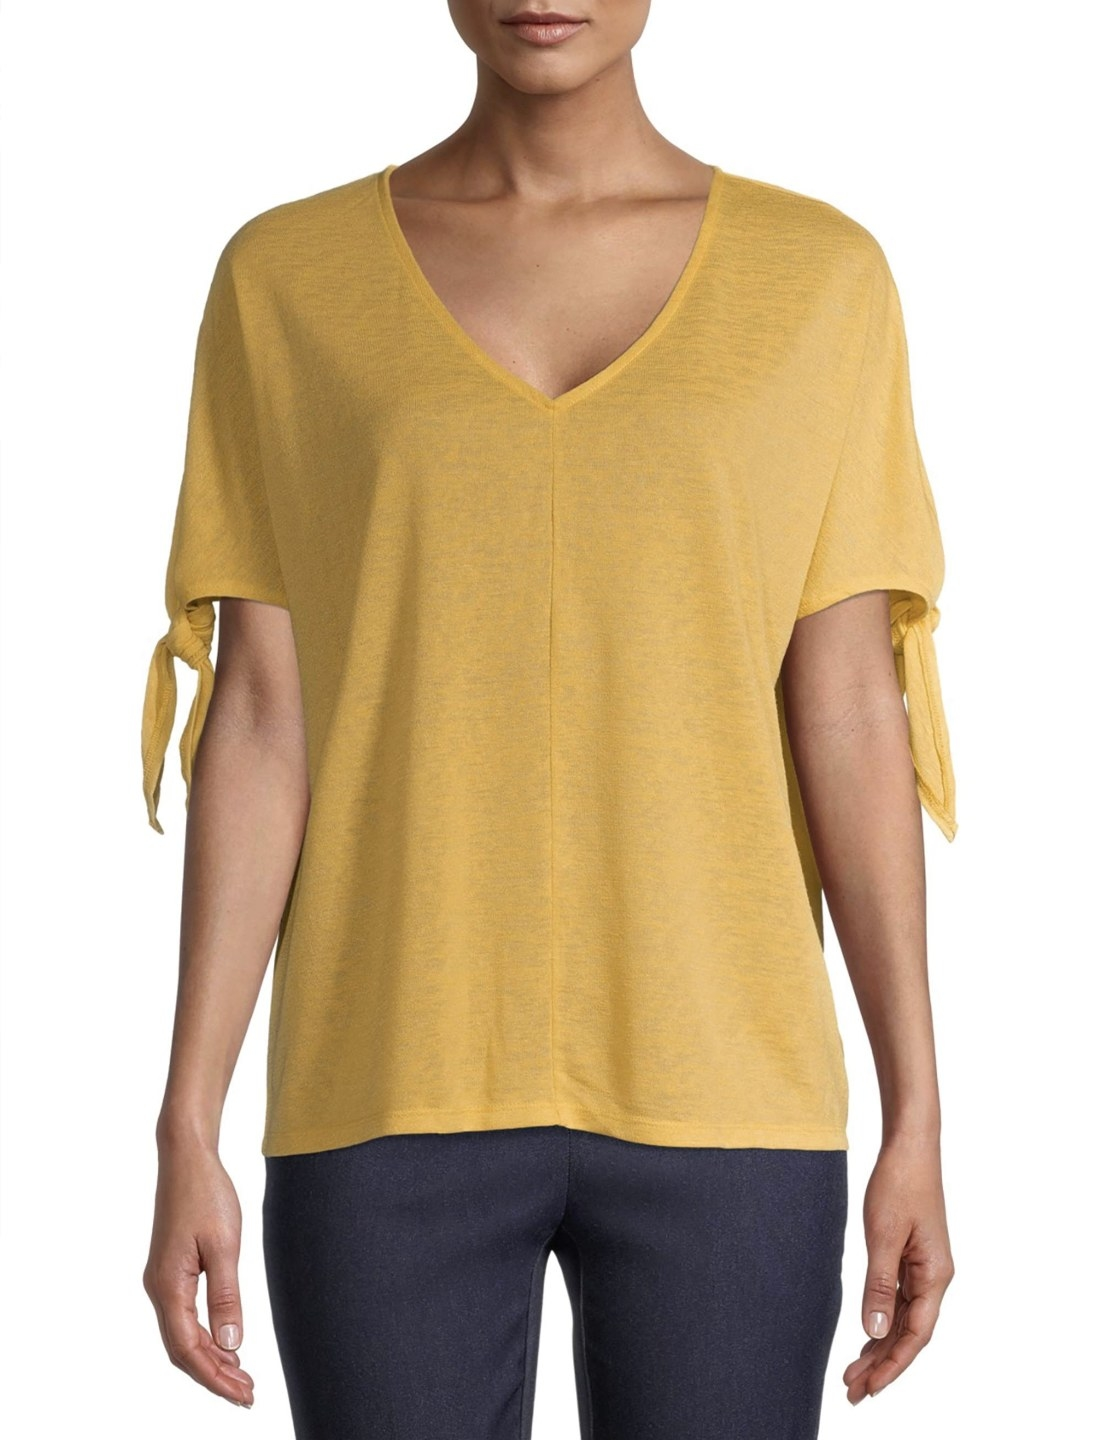 Model in the mustard yellow top